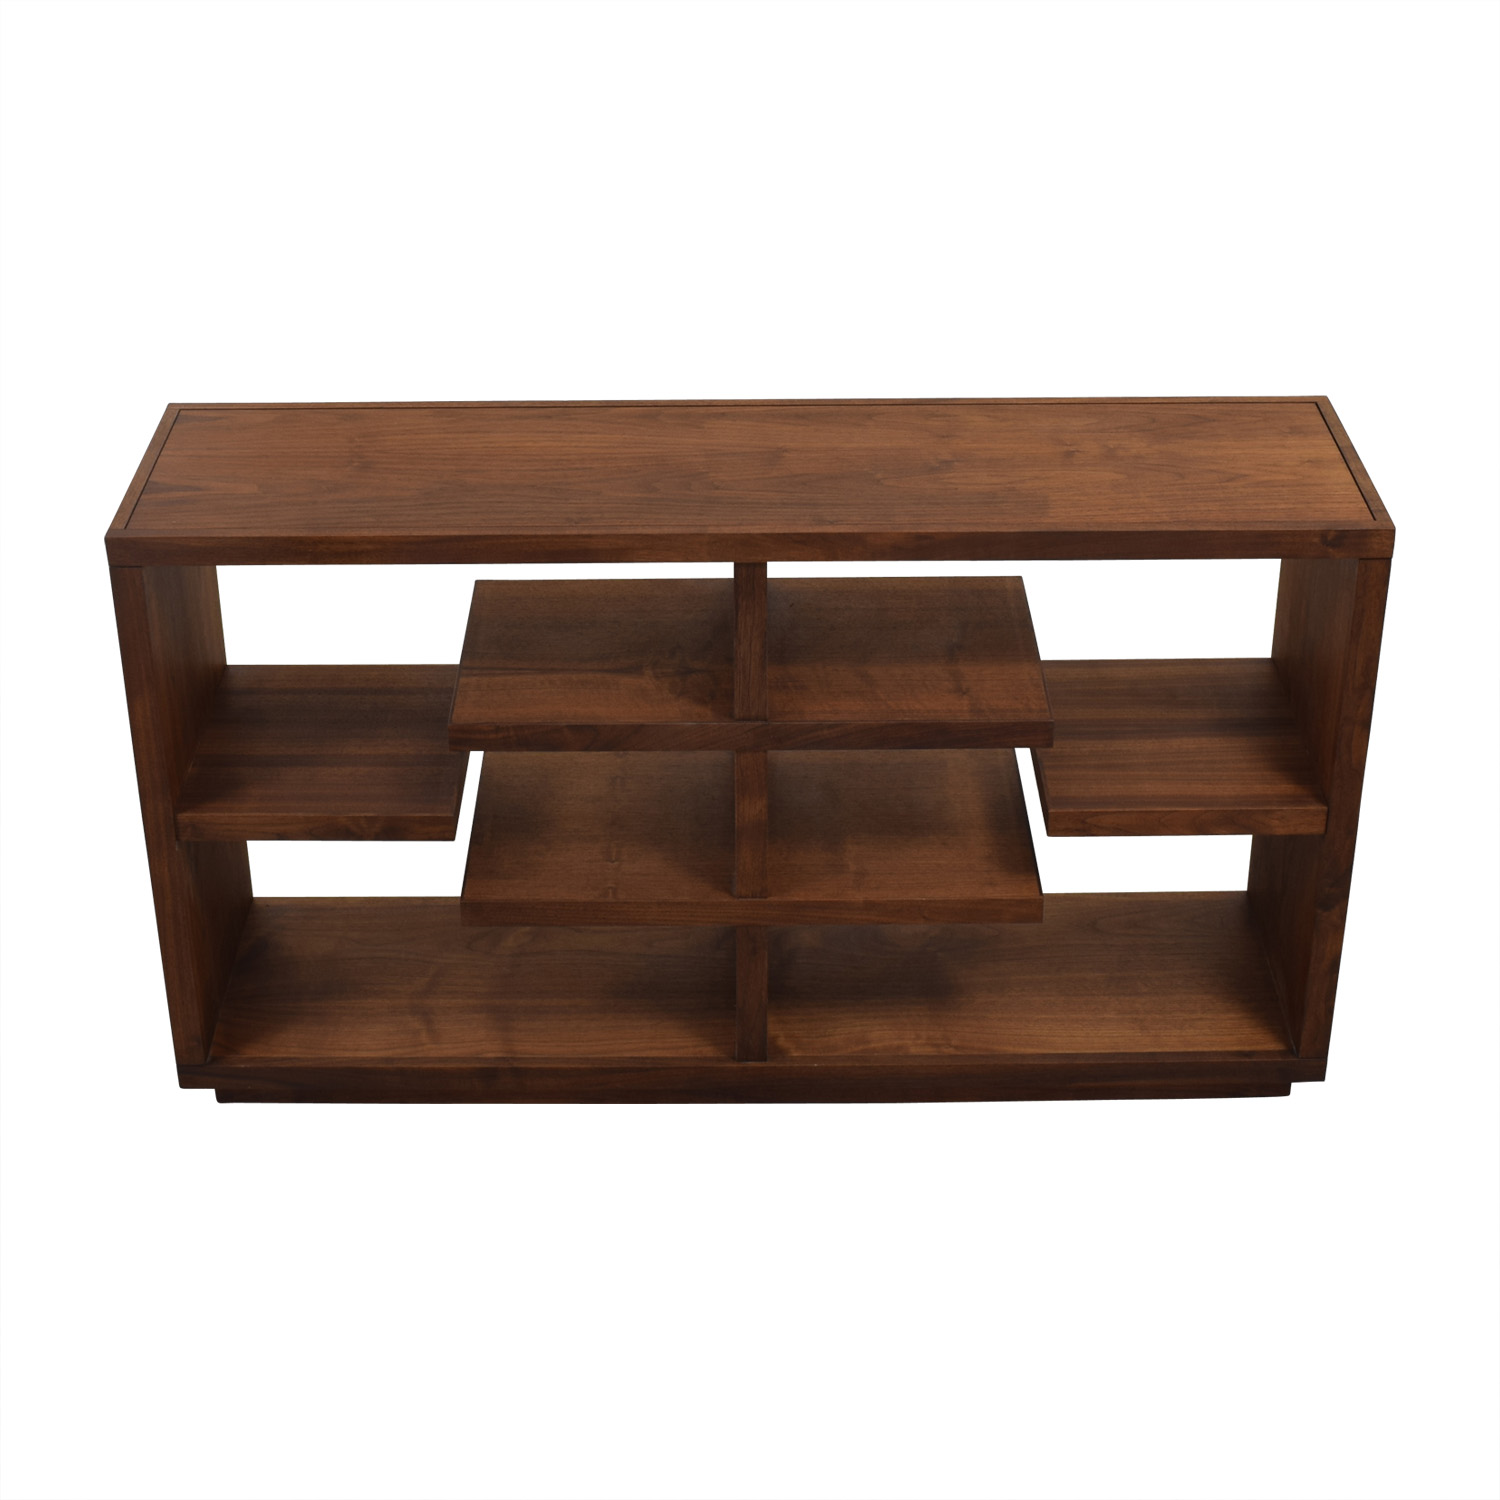 Crate & Barrel Crate & Barrel Elevate Walnut Bookcase Dark Brown